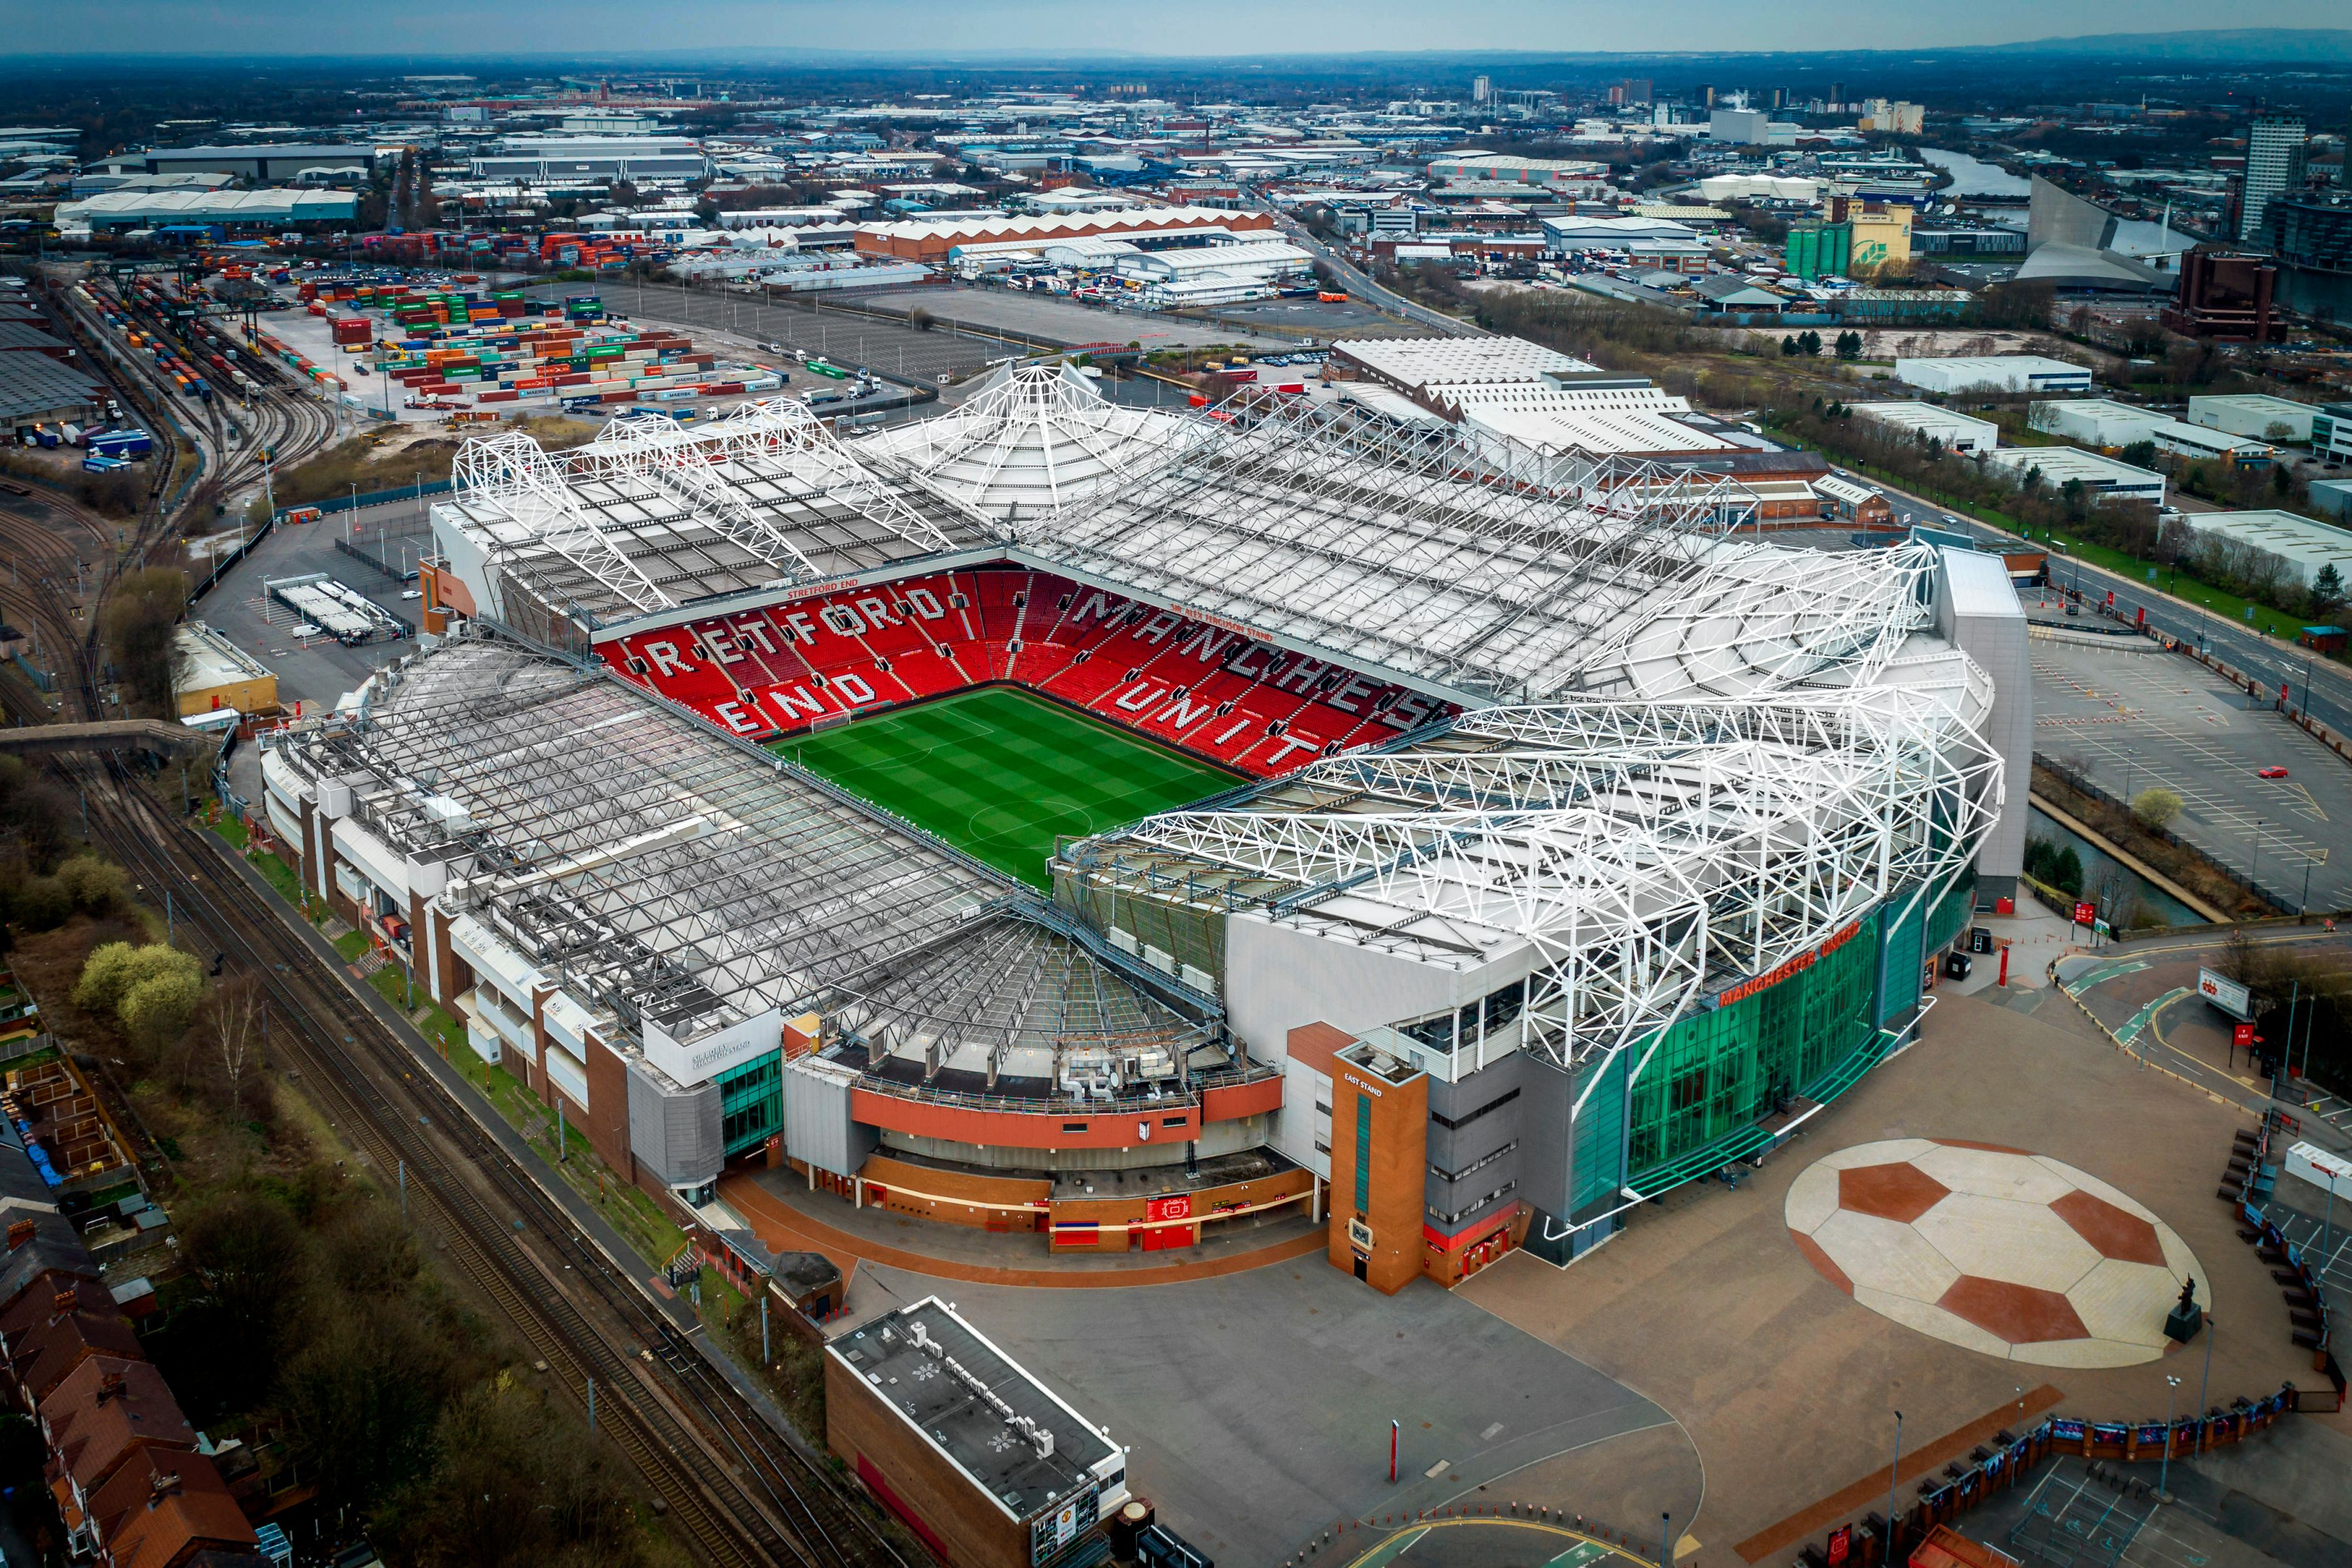 LEGO Advanced Models 10272 Old Trafford - Manchester United LEGO_10272_alt23.jpg